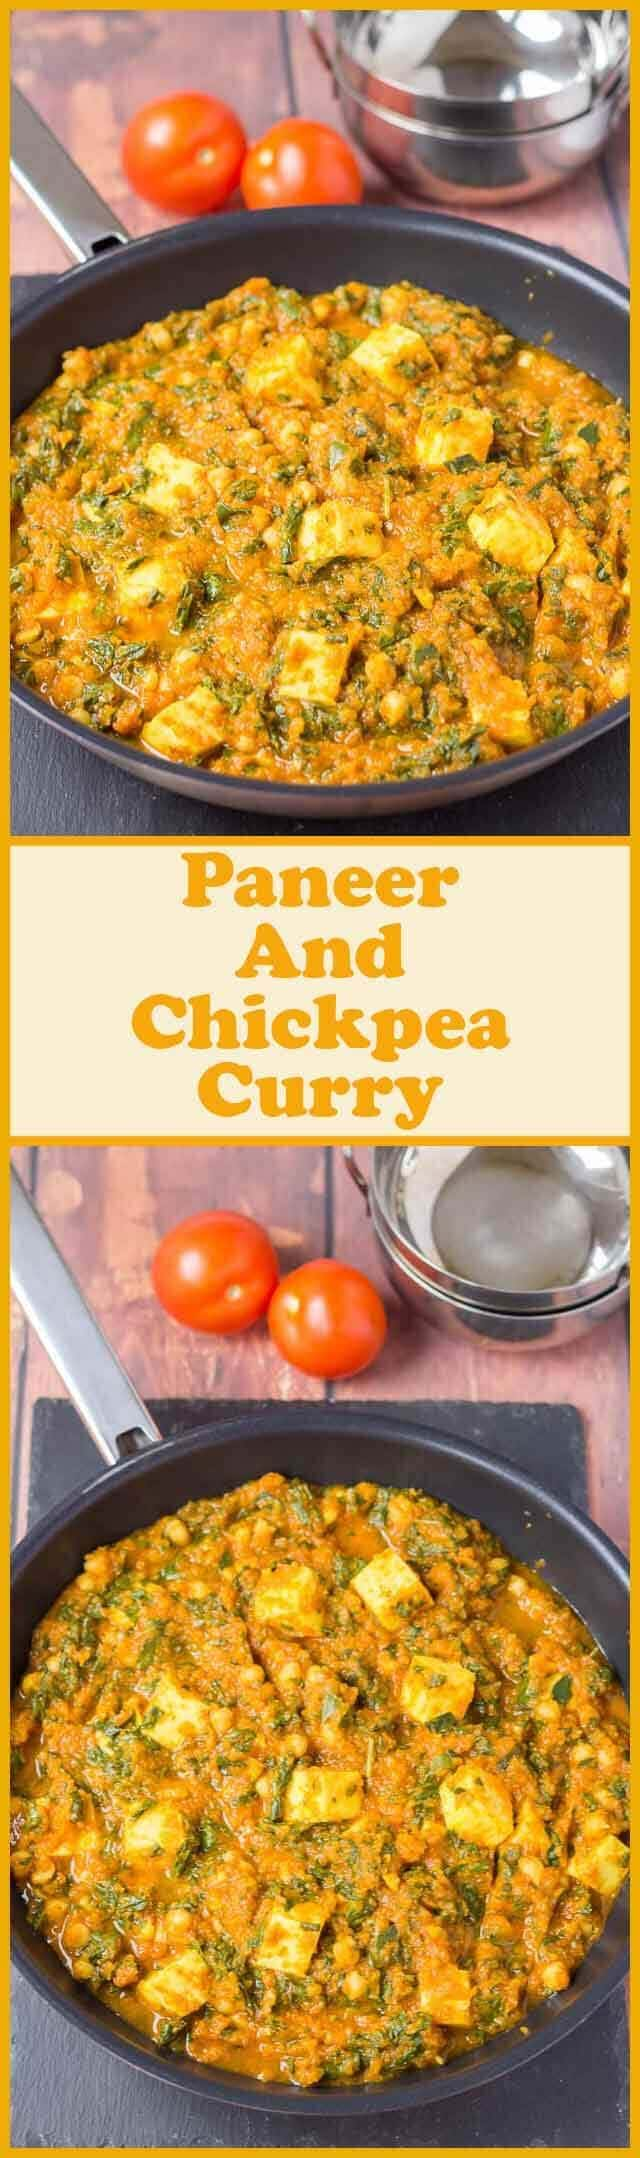 This vegetarian paneer and chickpea curry is not only healthy and easy to make, but it's incredibly low cost too. Tinned tomatoes, tinned chickpeas and a selection of store cupboard spices combined with paneer cheese make a deliciously mild family curry for four!